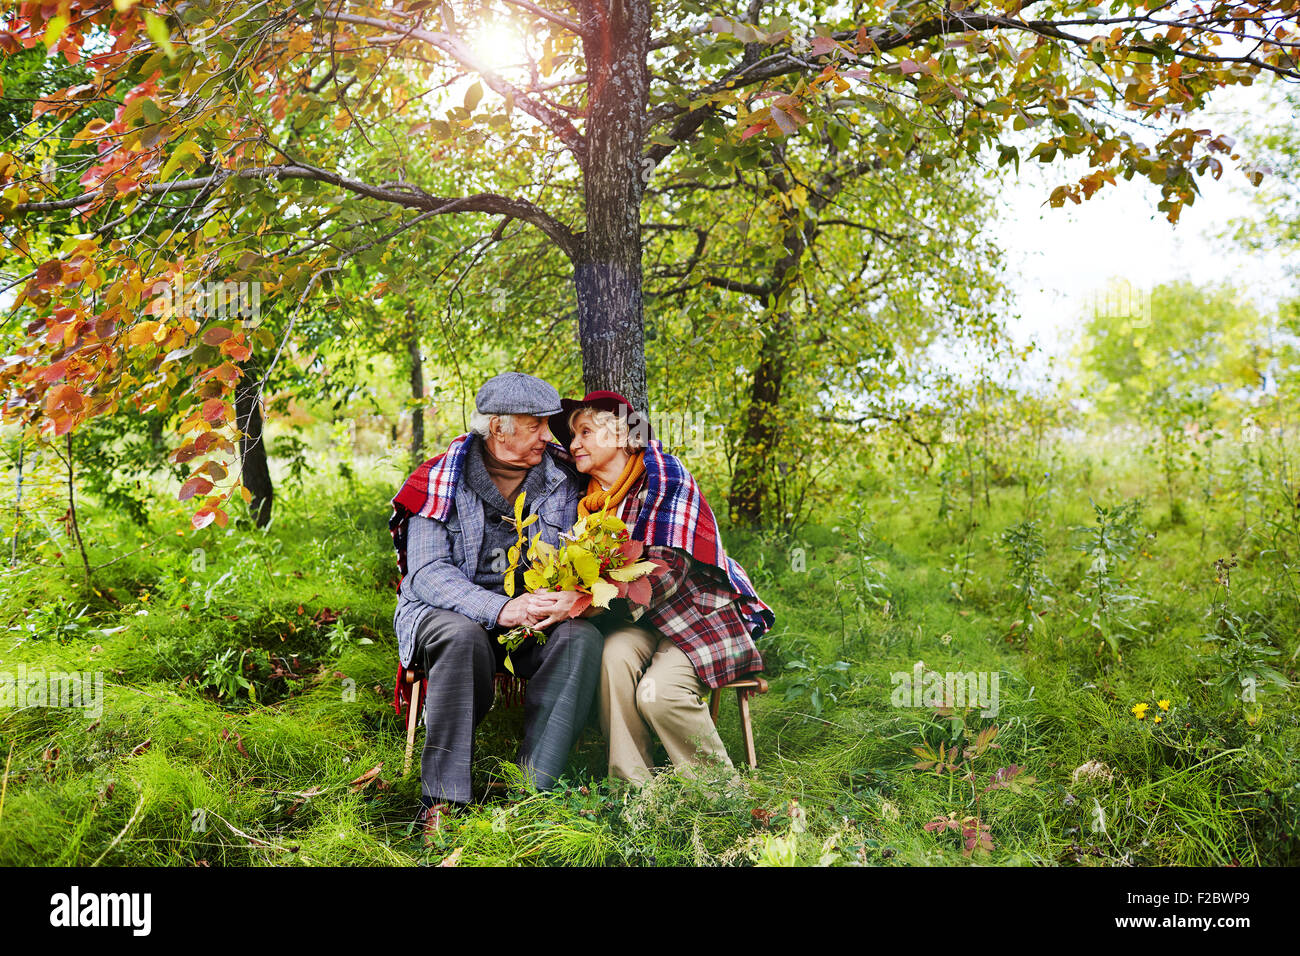 Affectionate seniors sitting under tree in park on autumn day - Stock Image